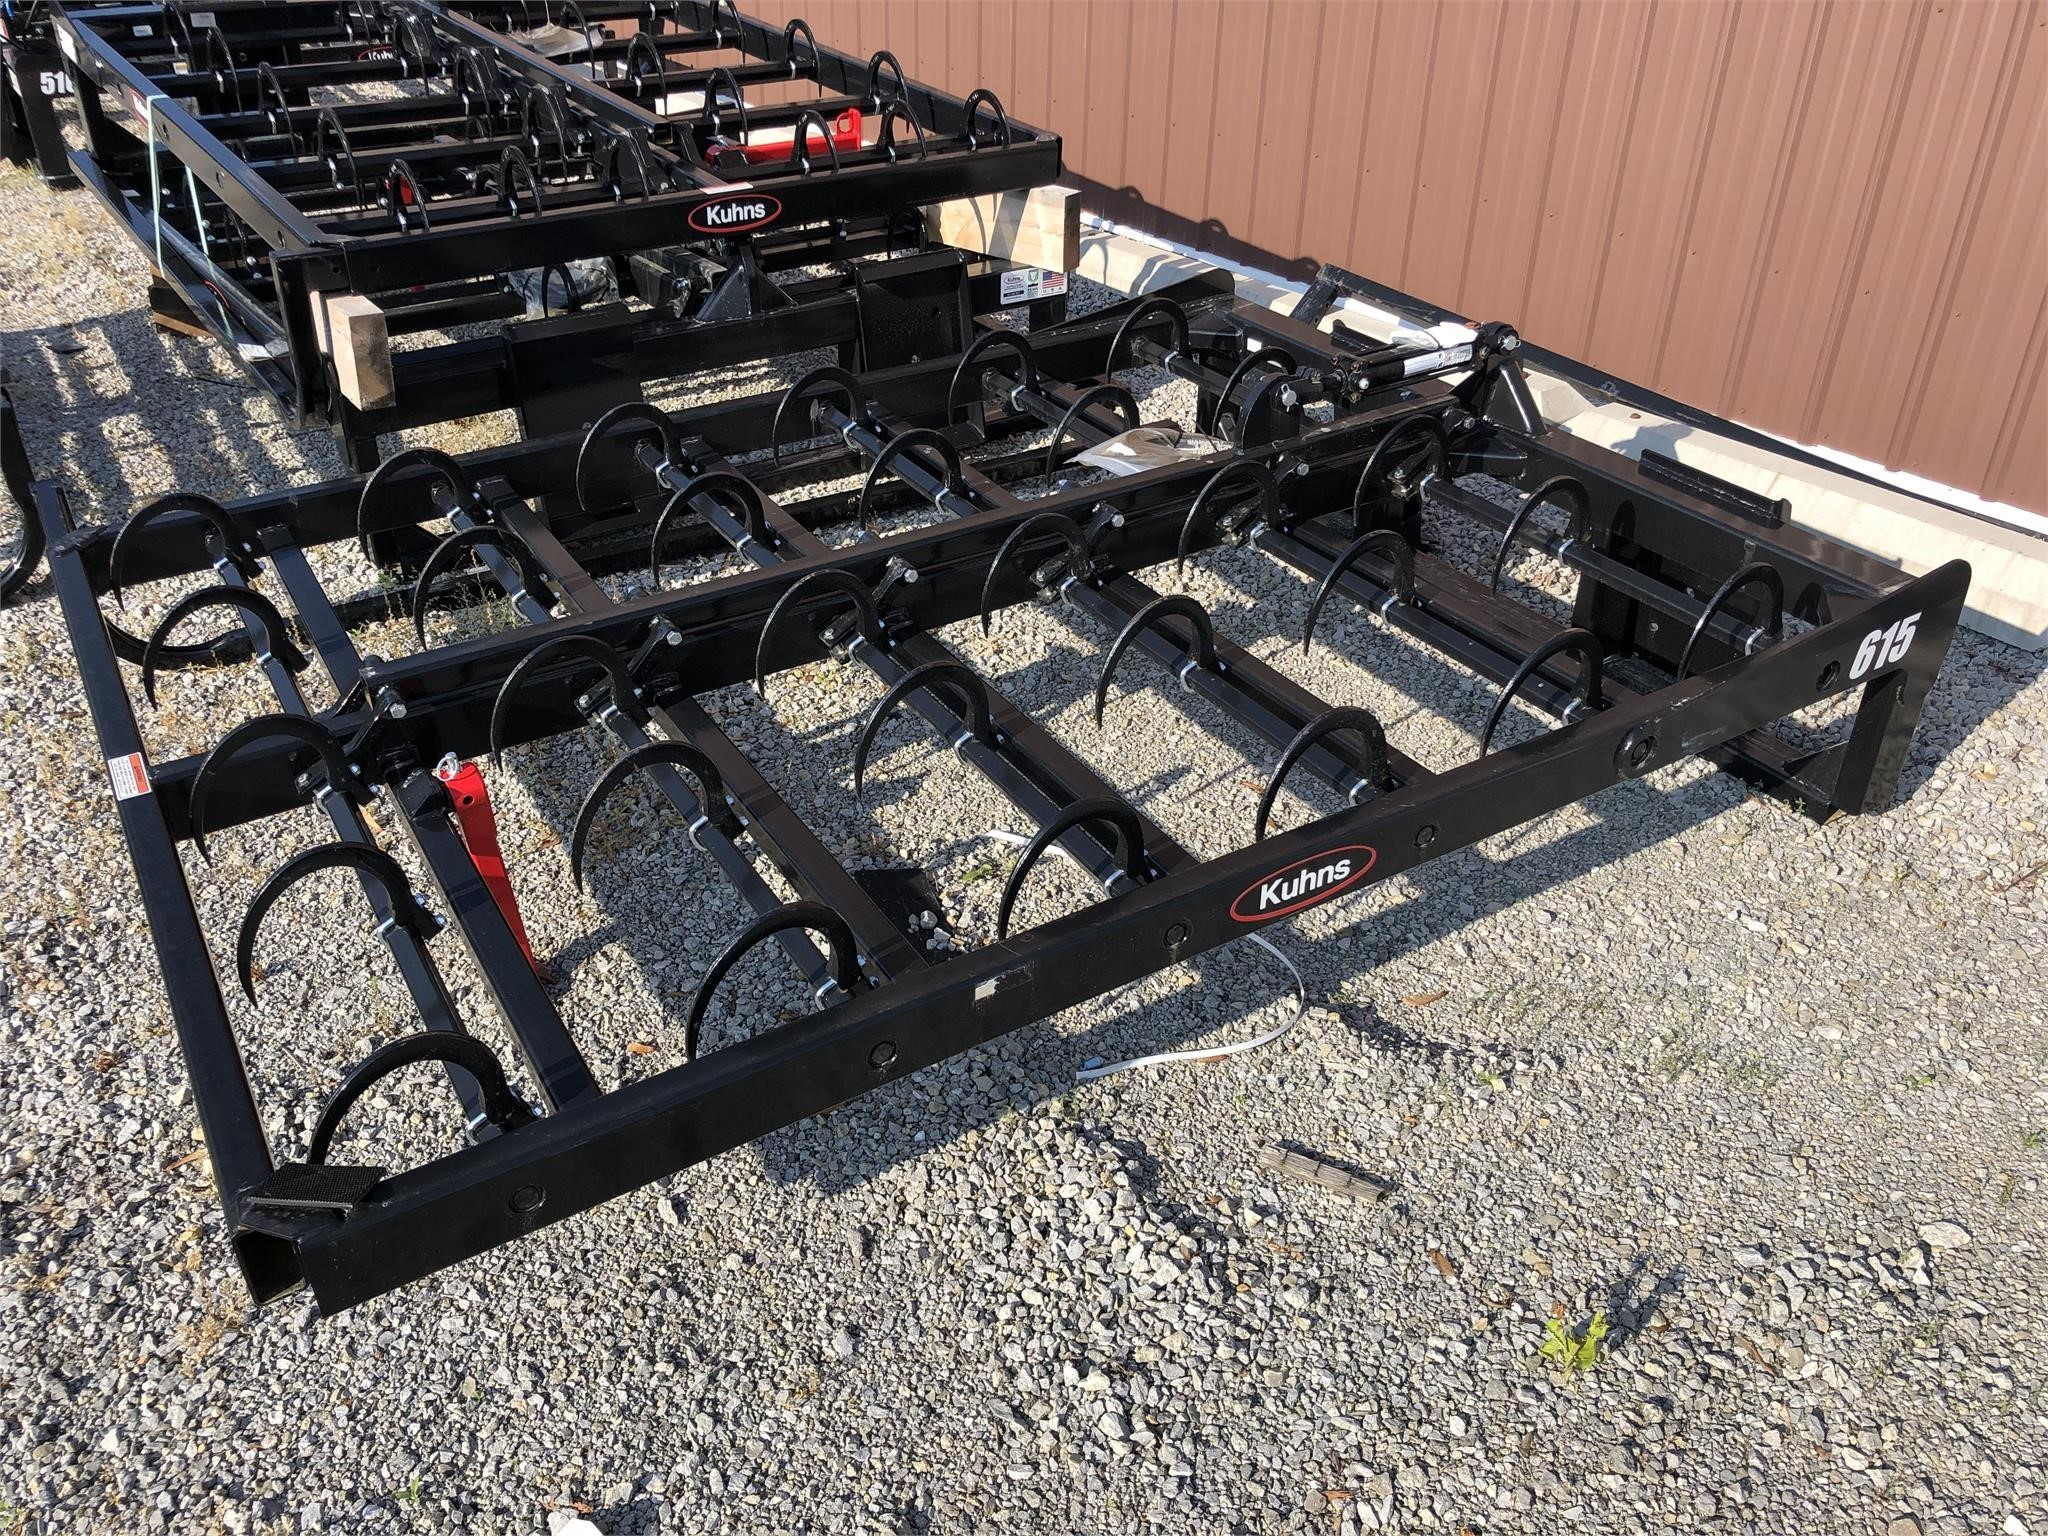 2021 Kuhns Manufacturing 615 Loader and Skid Steer Attachment